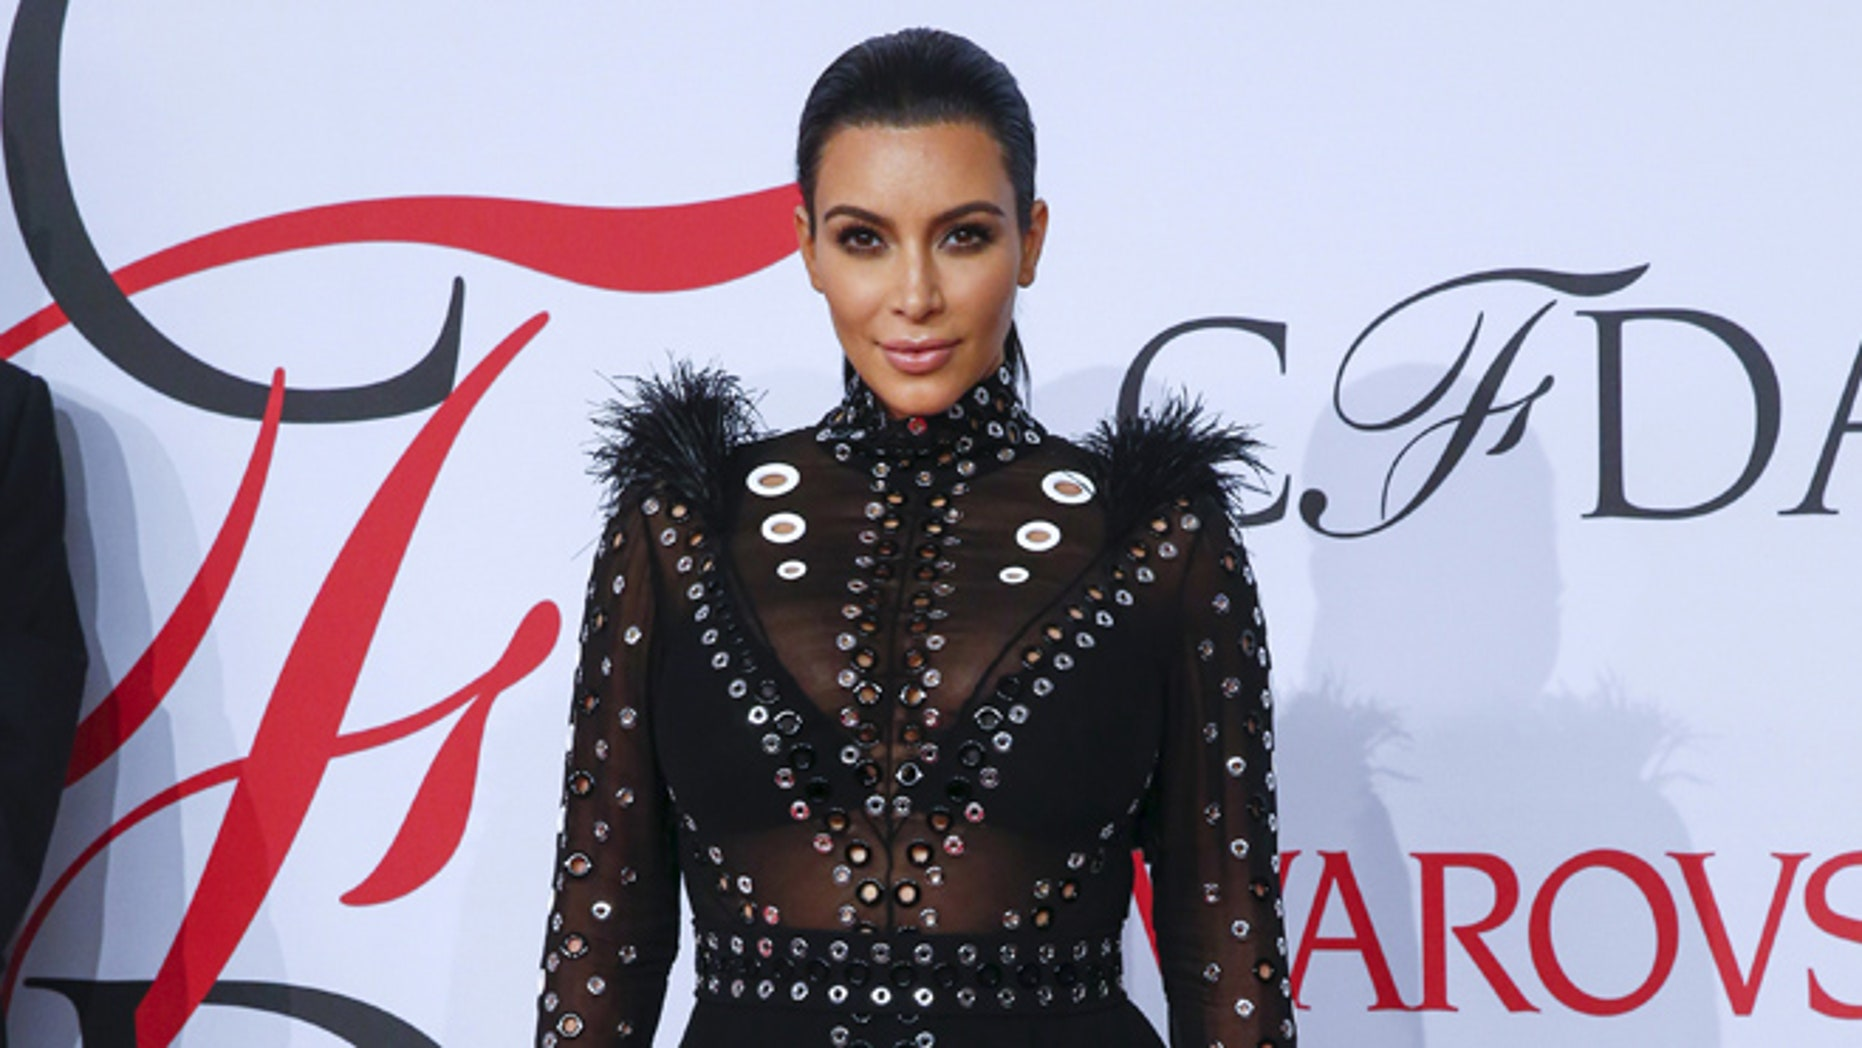 June 1, 2015. Television personality Kim Kardashian arrives to attend the 2015 CFDA Fashion Awards in New York.